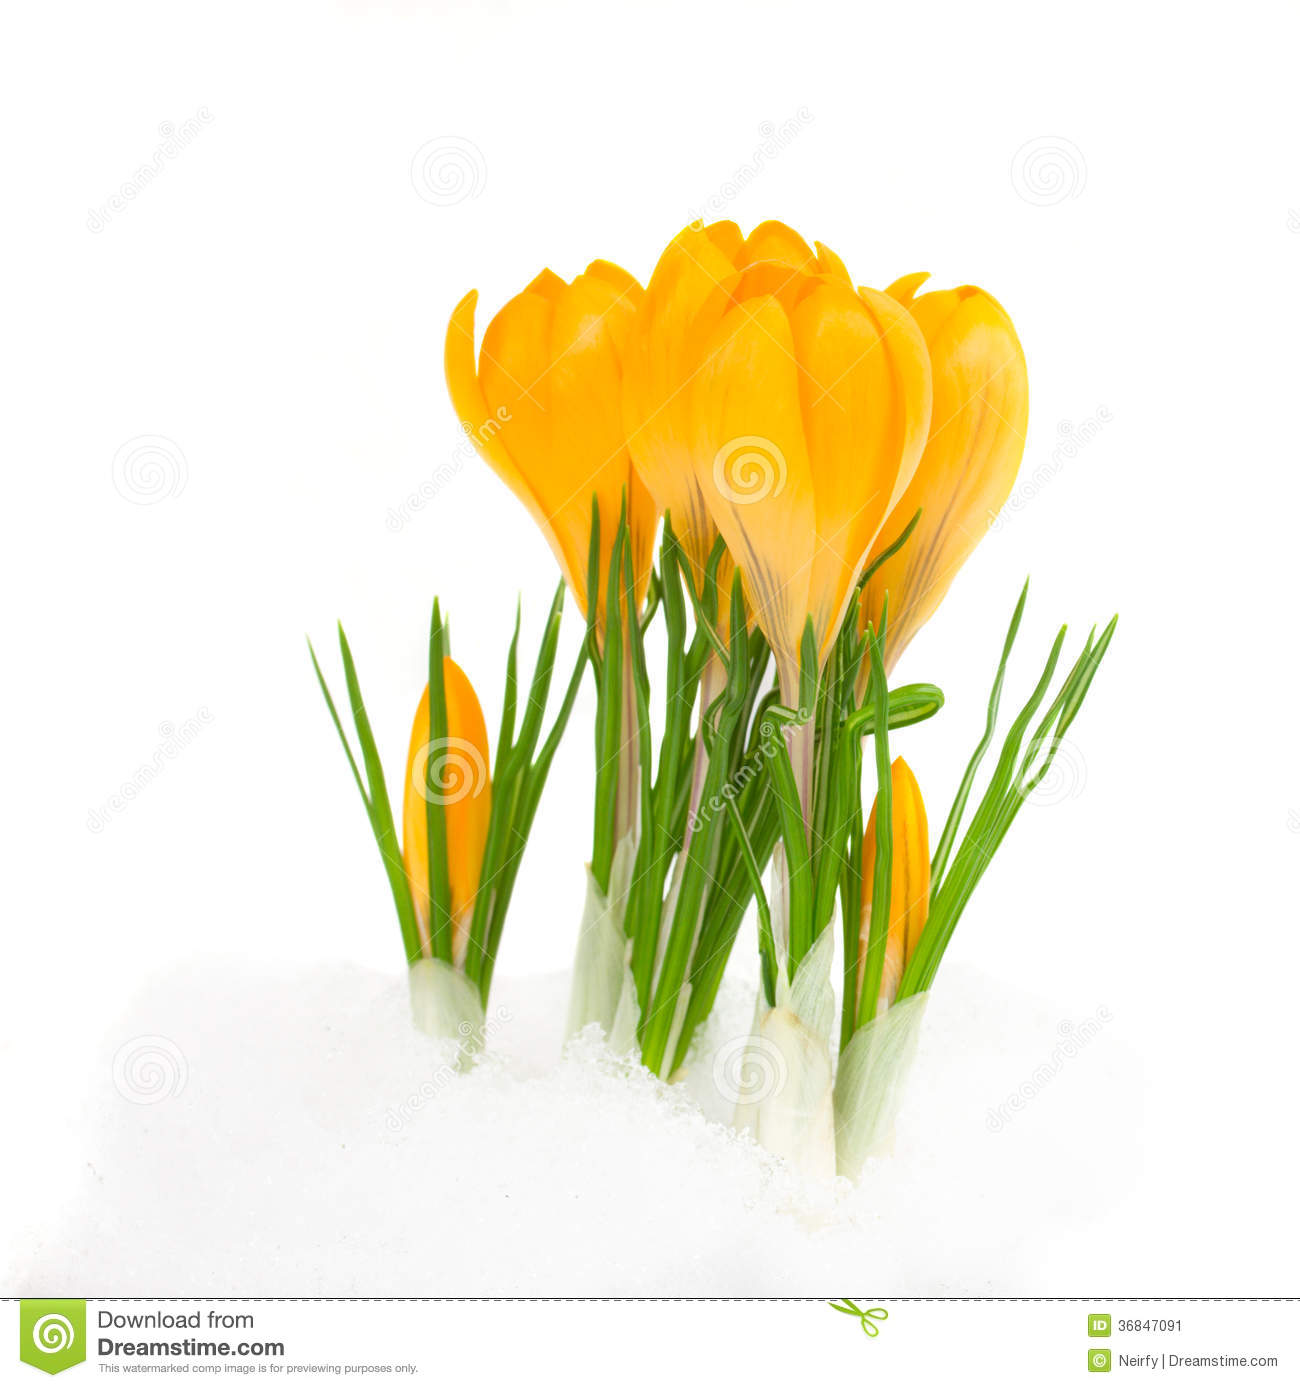 Yellow Crocus Flowers Stock Image Image Of Plant Floral 36847091